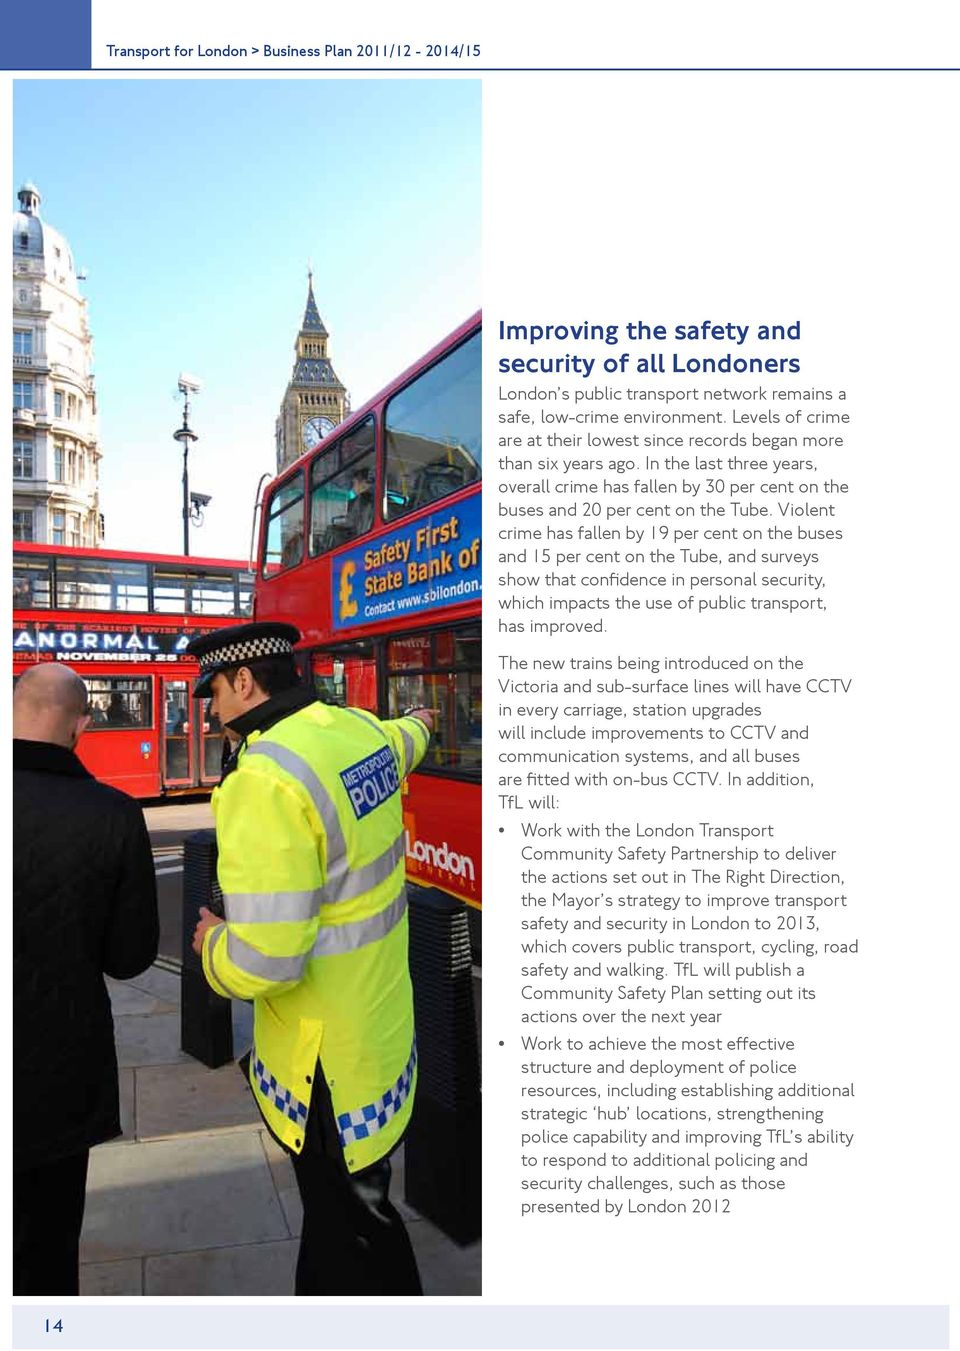 Violent crime has fallen by 19 per cent on the buses and 15 per cent on the Tube, and surveys show that confidence in personal security, which impacts the use of public transport, has improved.